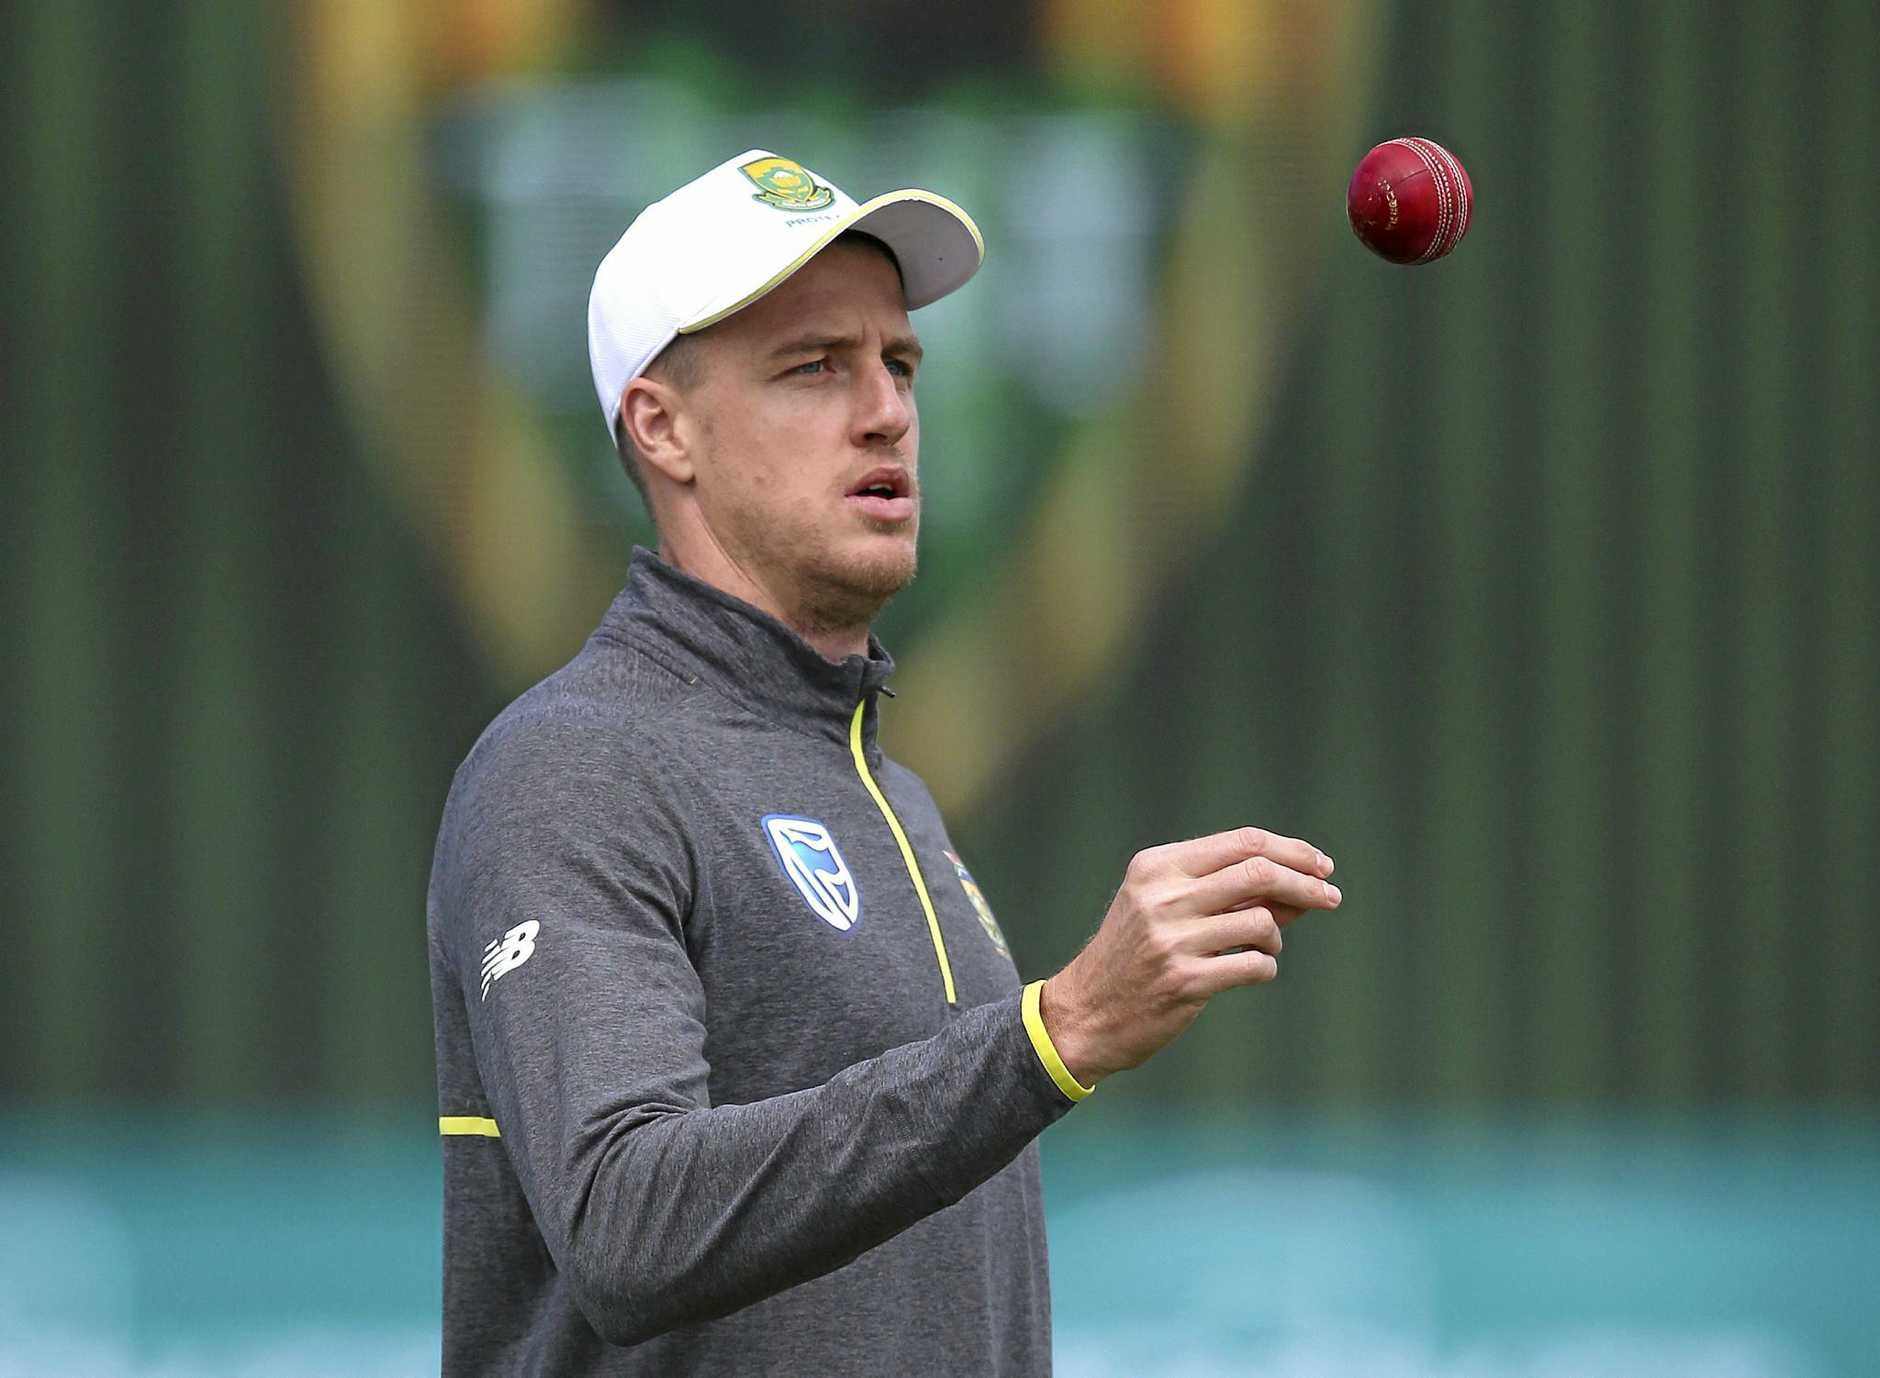 South Africa's Morne Morkel flips the ball up as he inspects the wicket at Hobart.